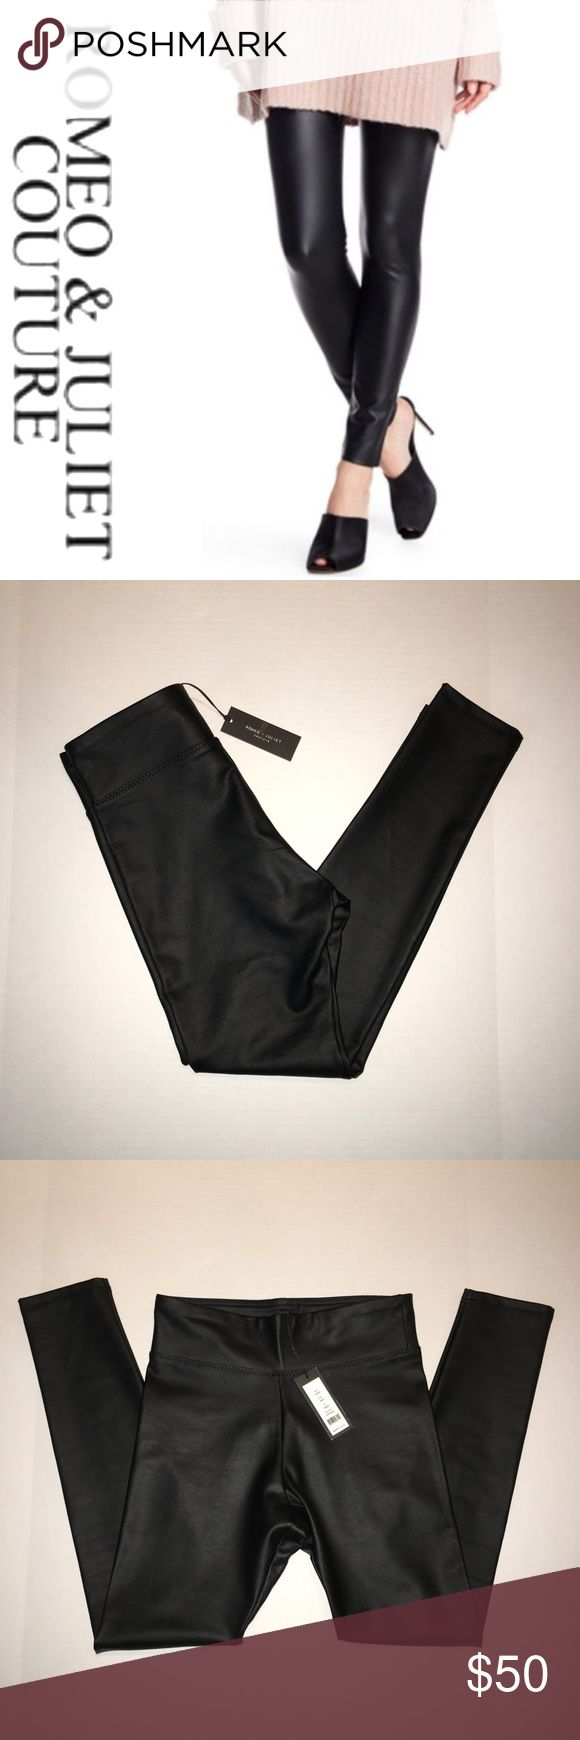 """NWT Romeo + Juliet high waisted leather leggings Perfect for a night out   Looks great paired w a crop top, over sized sweater or embellished boyfriend blazer   The Romeo and Juliet Couture black faux """"leather"""" legging is figure flattering with its high rise cut and thick material.   Size: small Waist: 13"""" Rise: 12.5"""" Inseam: 27""""  Perfect new with tags condition Romeo & Juliet Couture Pants Leggings"""